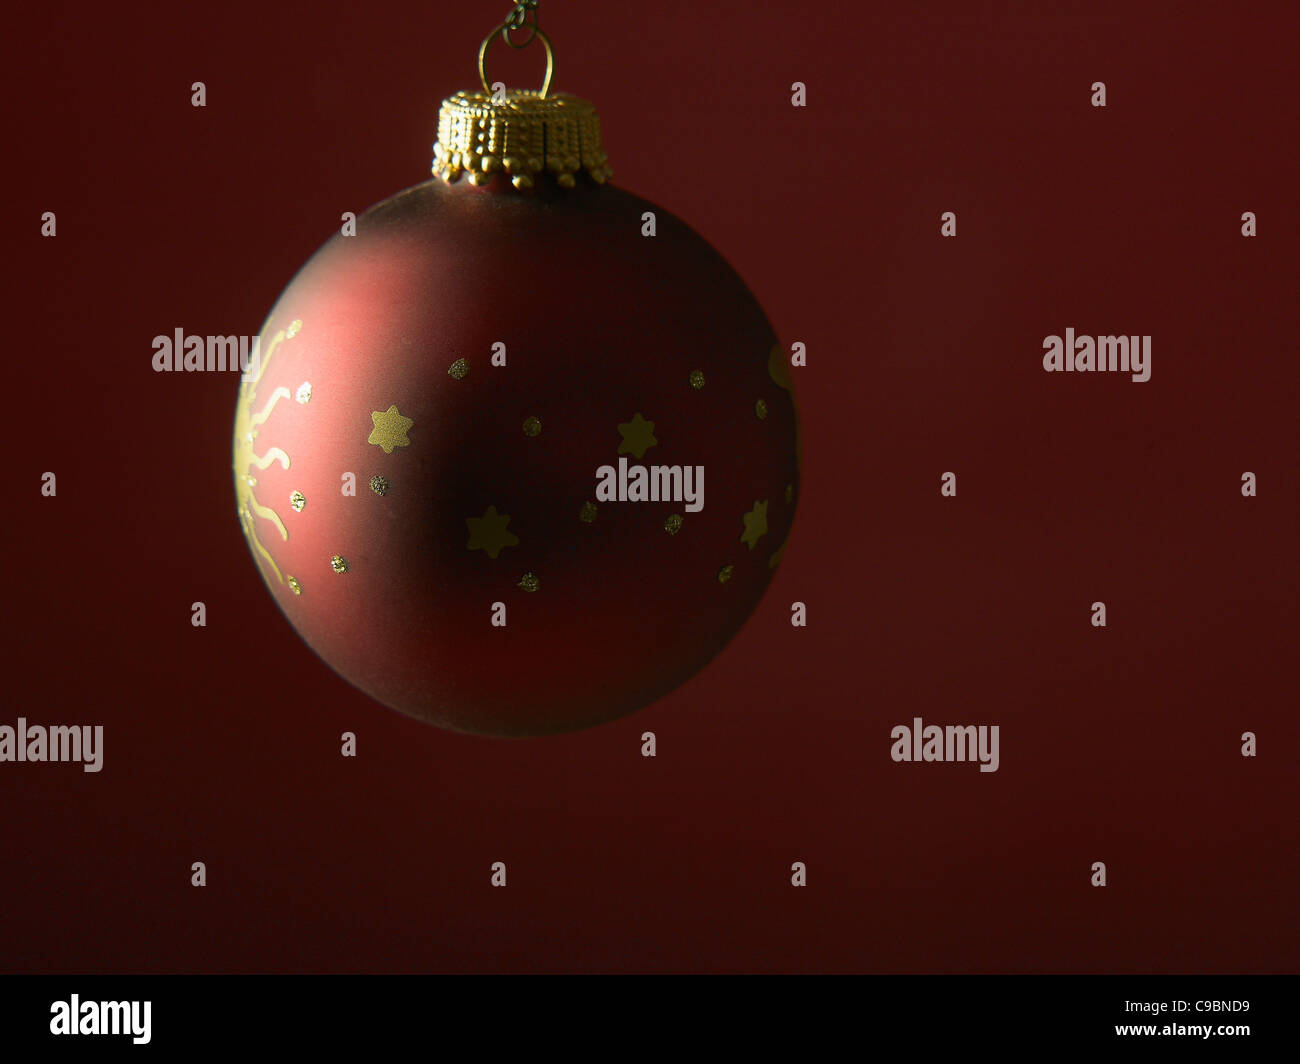 christmas bulb against red background stock photo 40210949 alamy